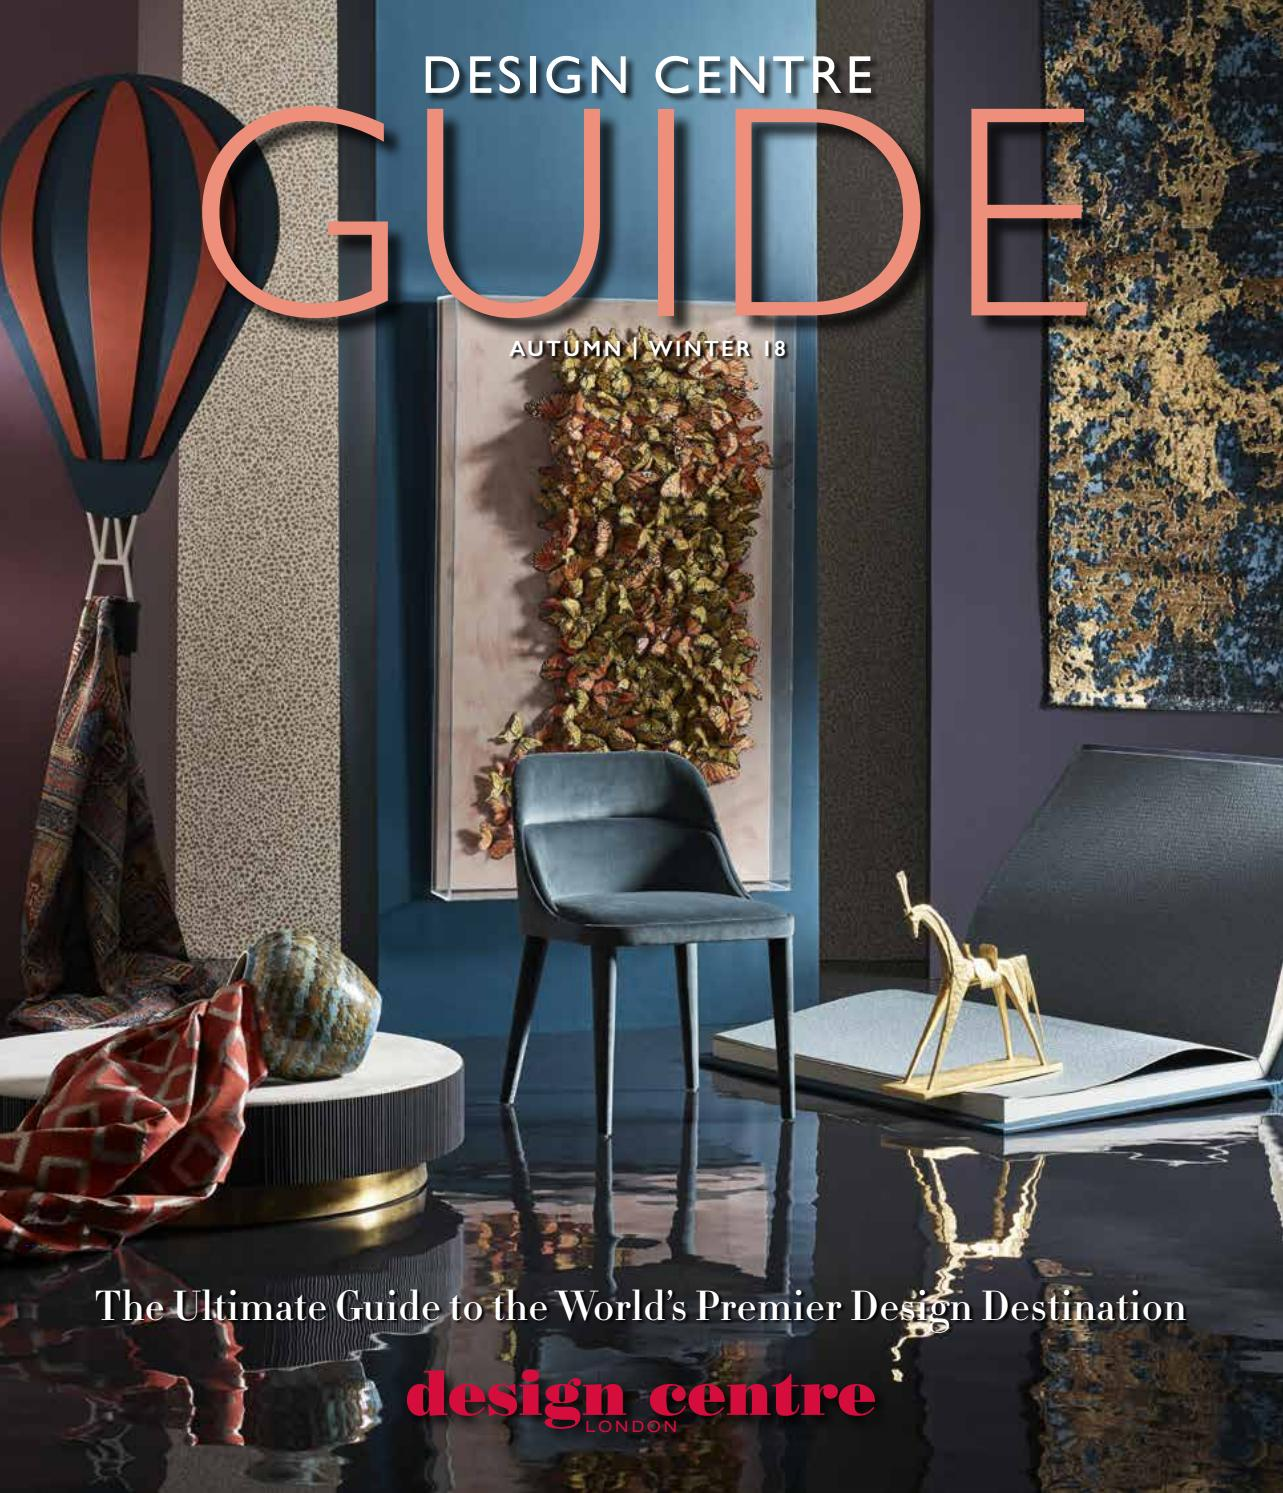 Aw18 Design Centre Guide By Design Centre Chelsea Harbour